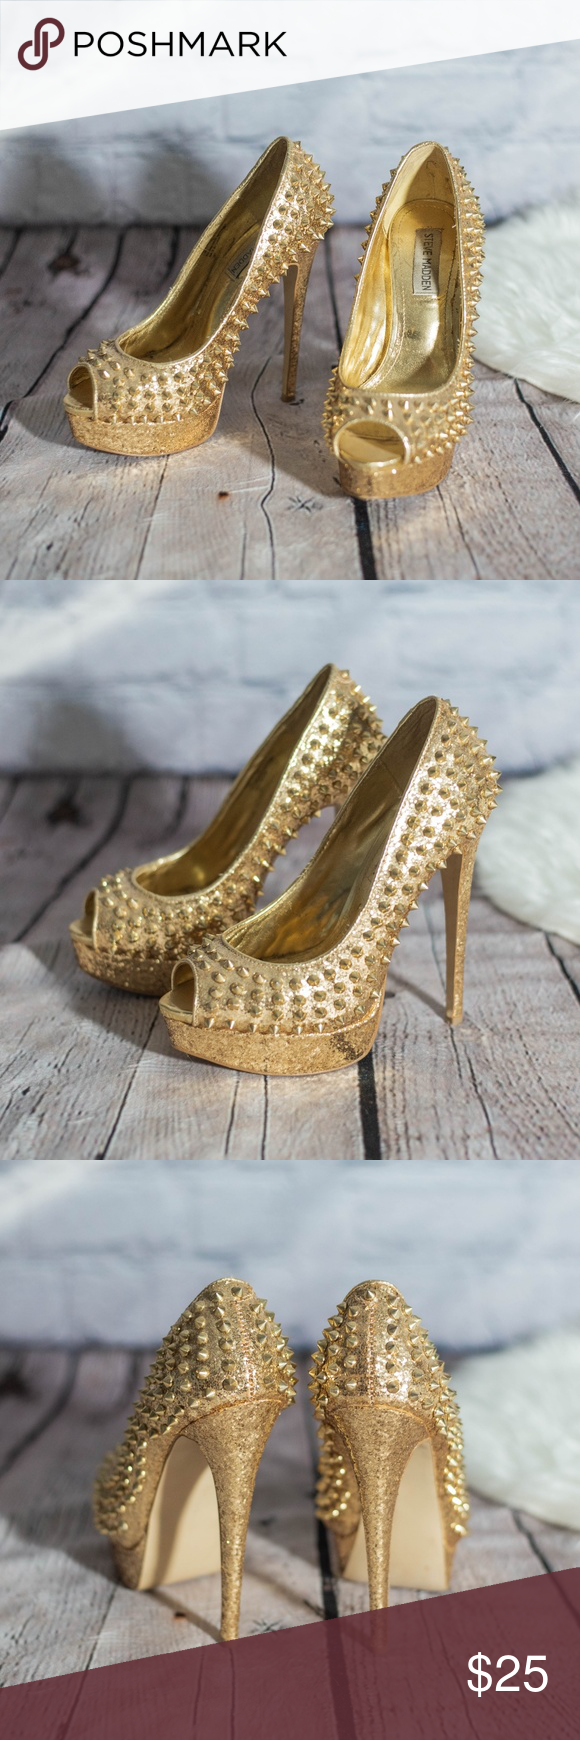 Steve Madden Lorie sparkly gold spikey heels Steve Madden Lorie heels. Size 7.5, runs small, fits more like a 7.   Gold studded spikes on a gold glitter background.   Peep toe  Gold metallic pumps  Perfect for bachelorette parties or birthdays! Steve Madden Shoes Heels #goldglitterbackground